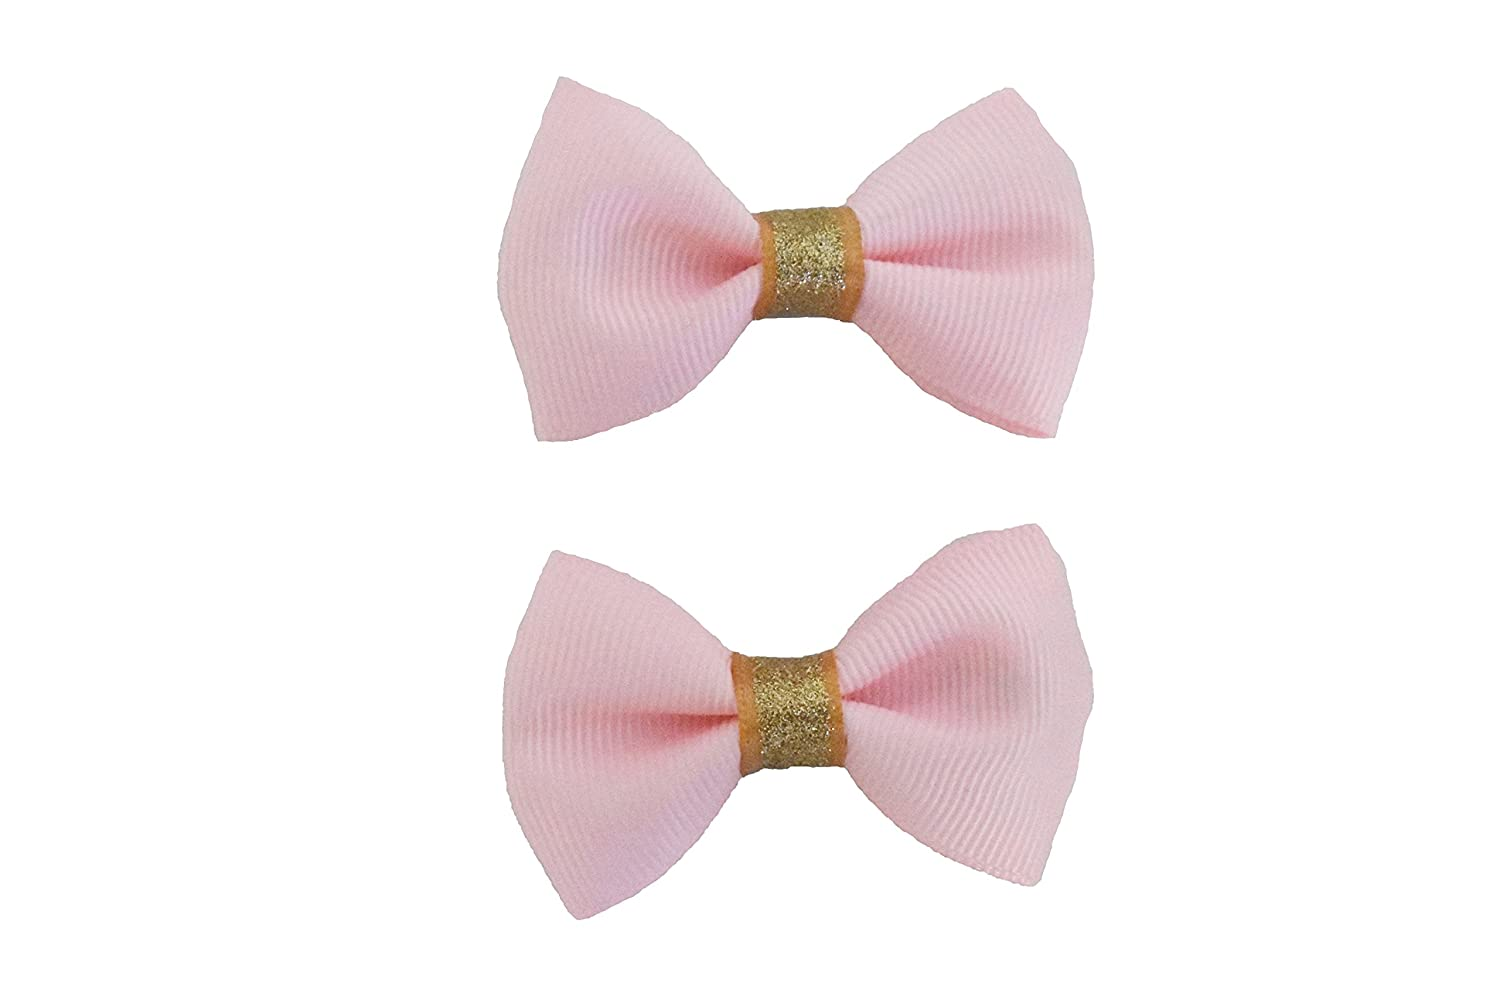 500 Non Slip Grip liners for Alligator clips hair bows barrettes no slip liners